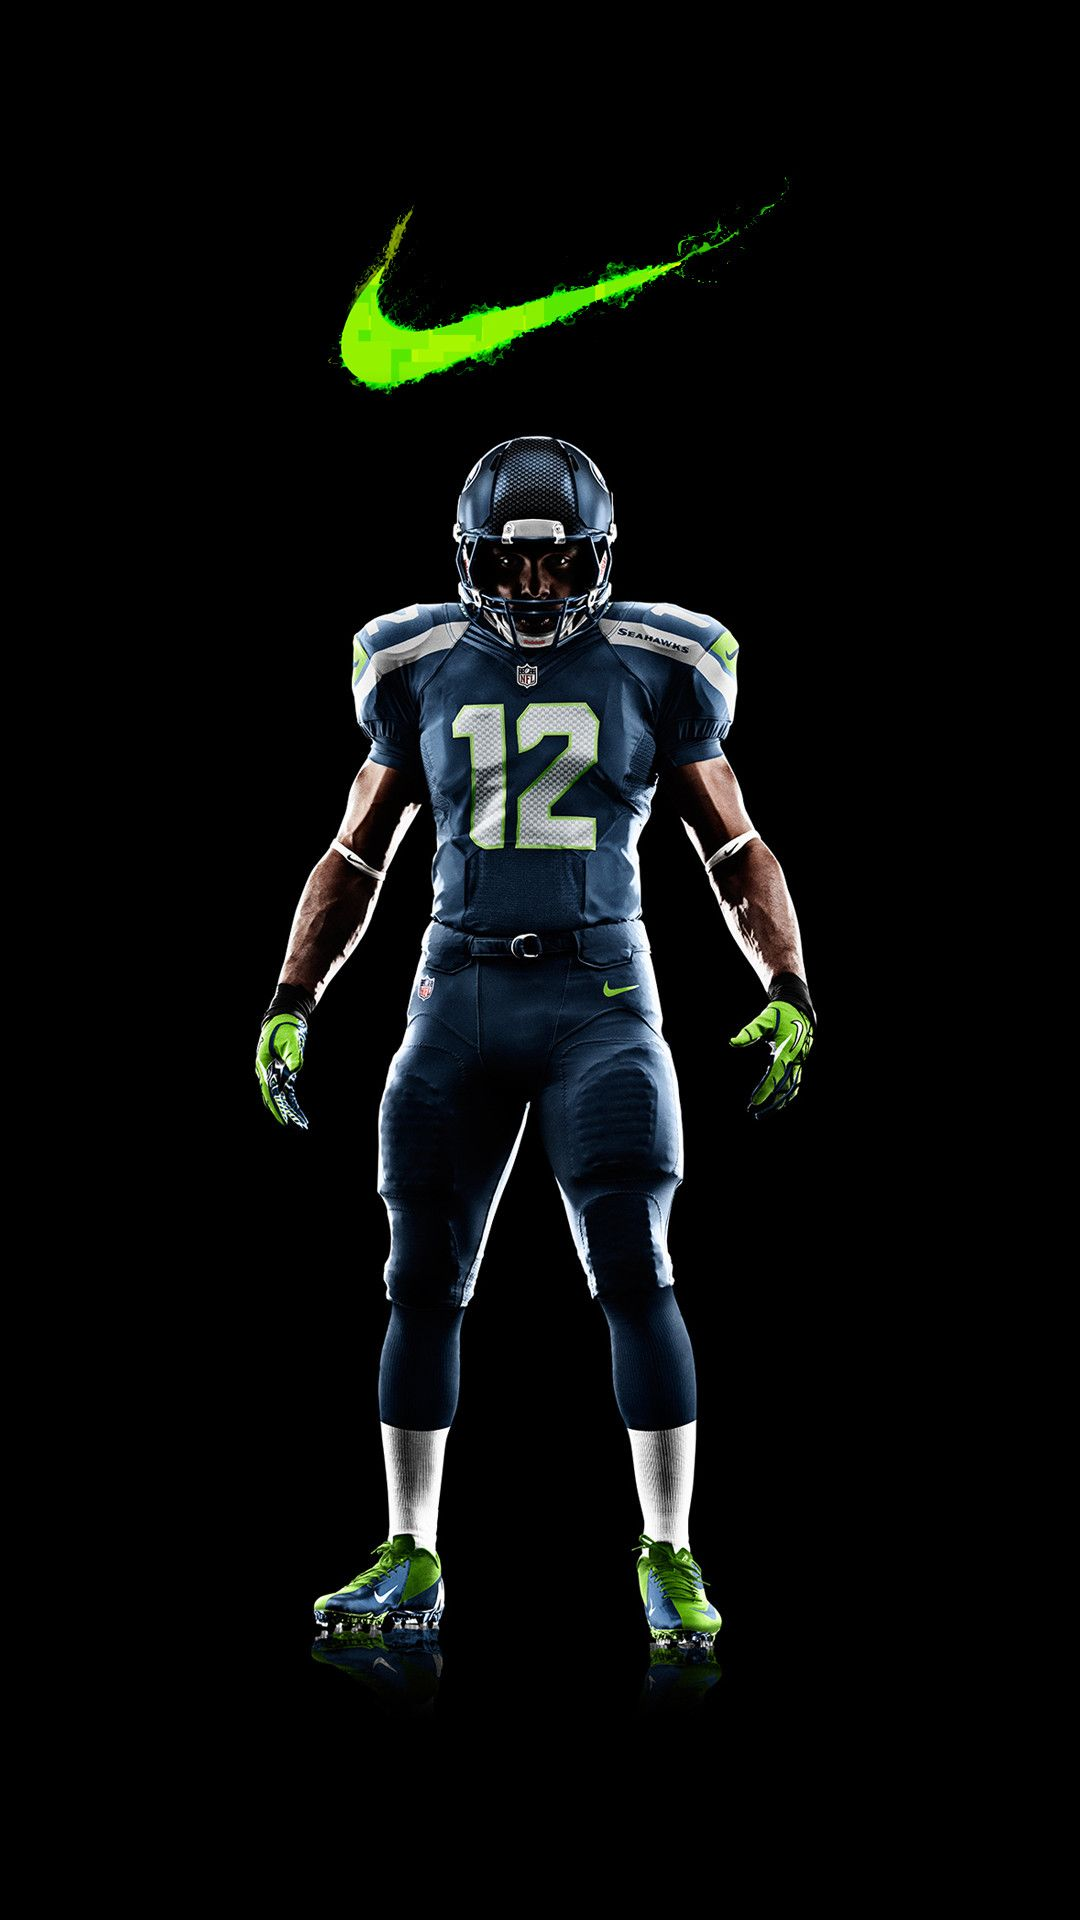 Color Rush Nfl Wallpaper Android In 2020 Seattle Seahawks Seattle Seahawks Football Nfl Seattle